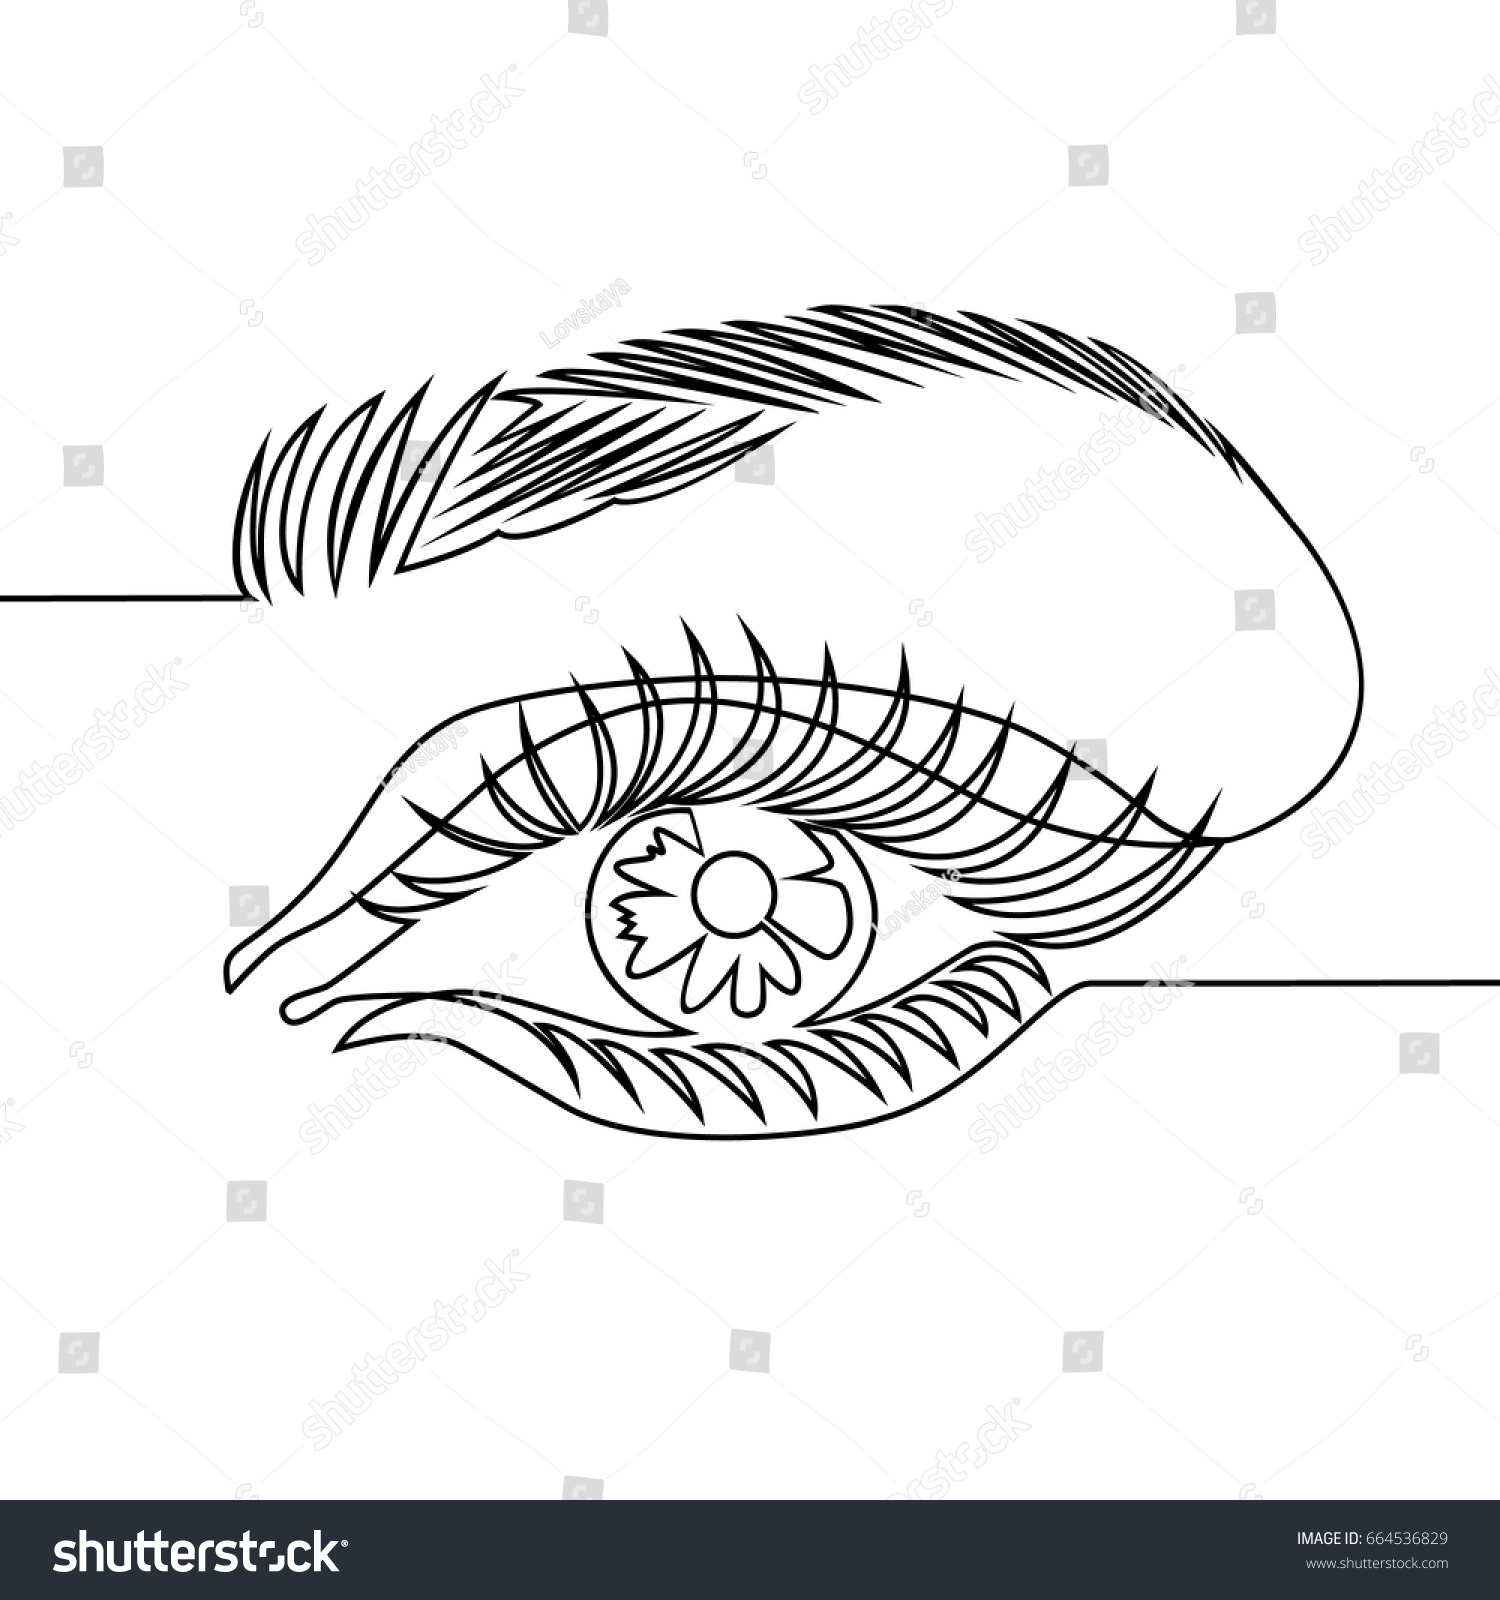 Line Drawing Eye : One line drawing woman eye stock vector